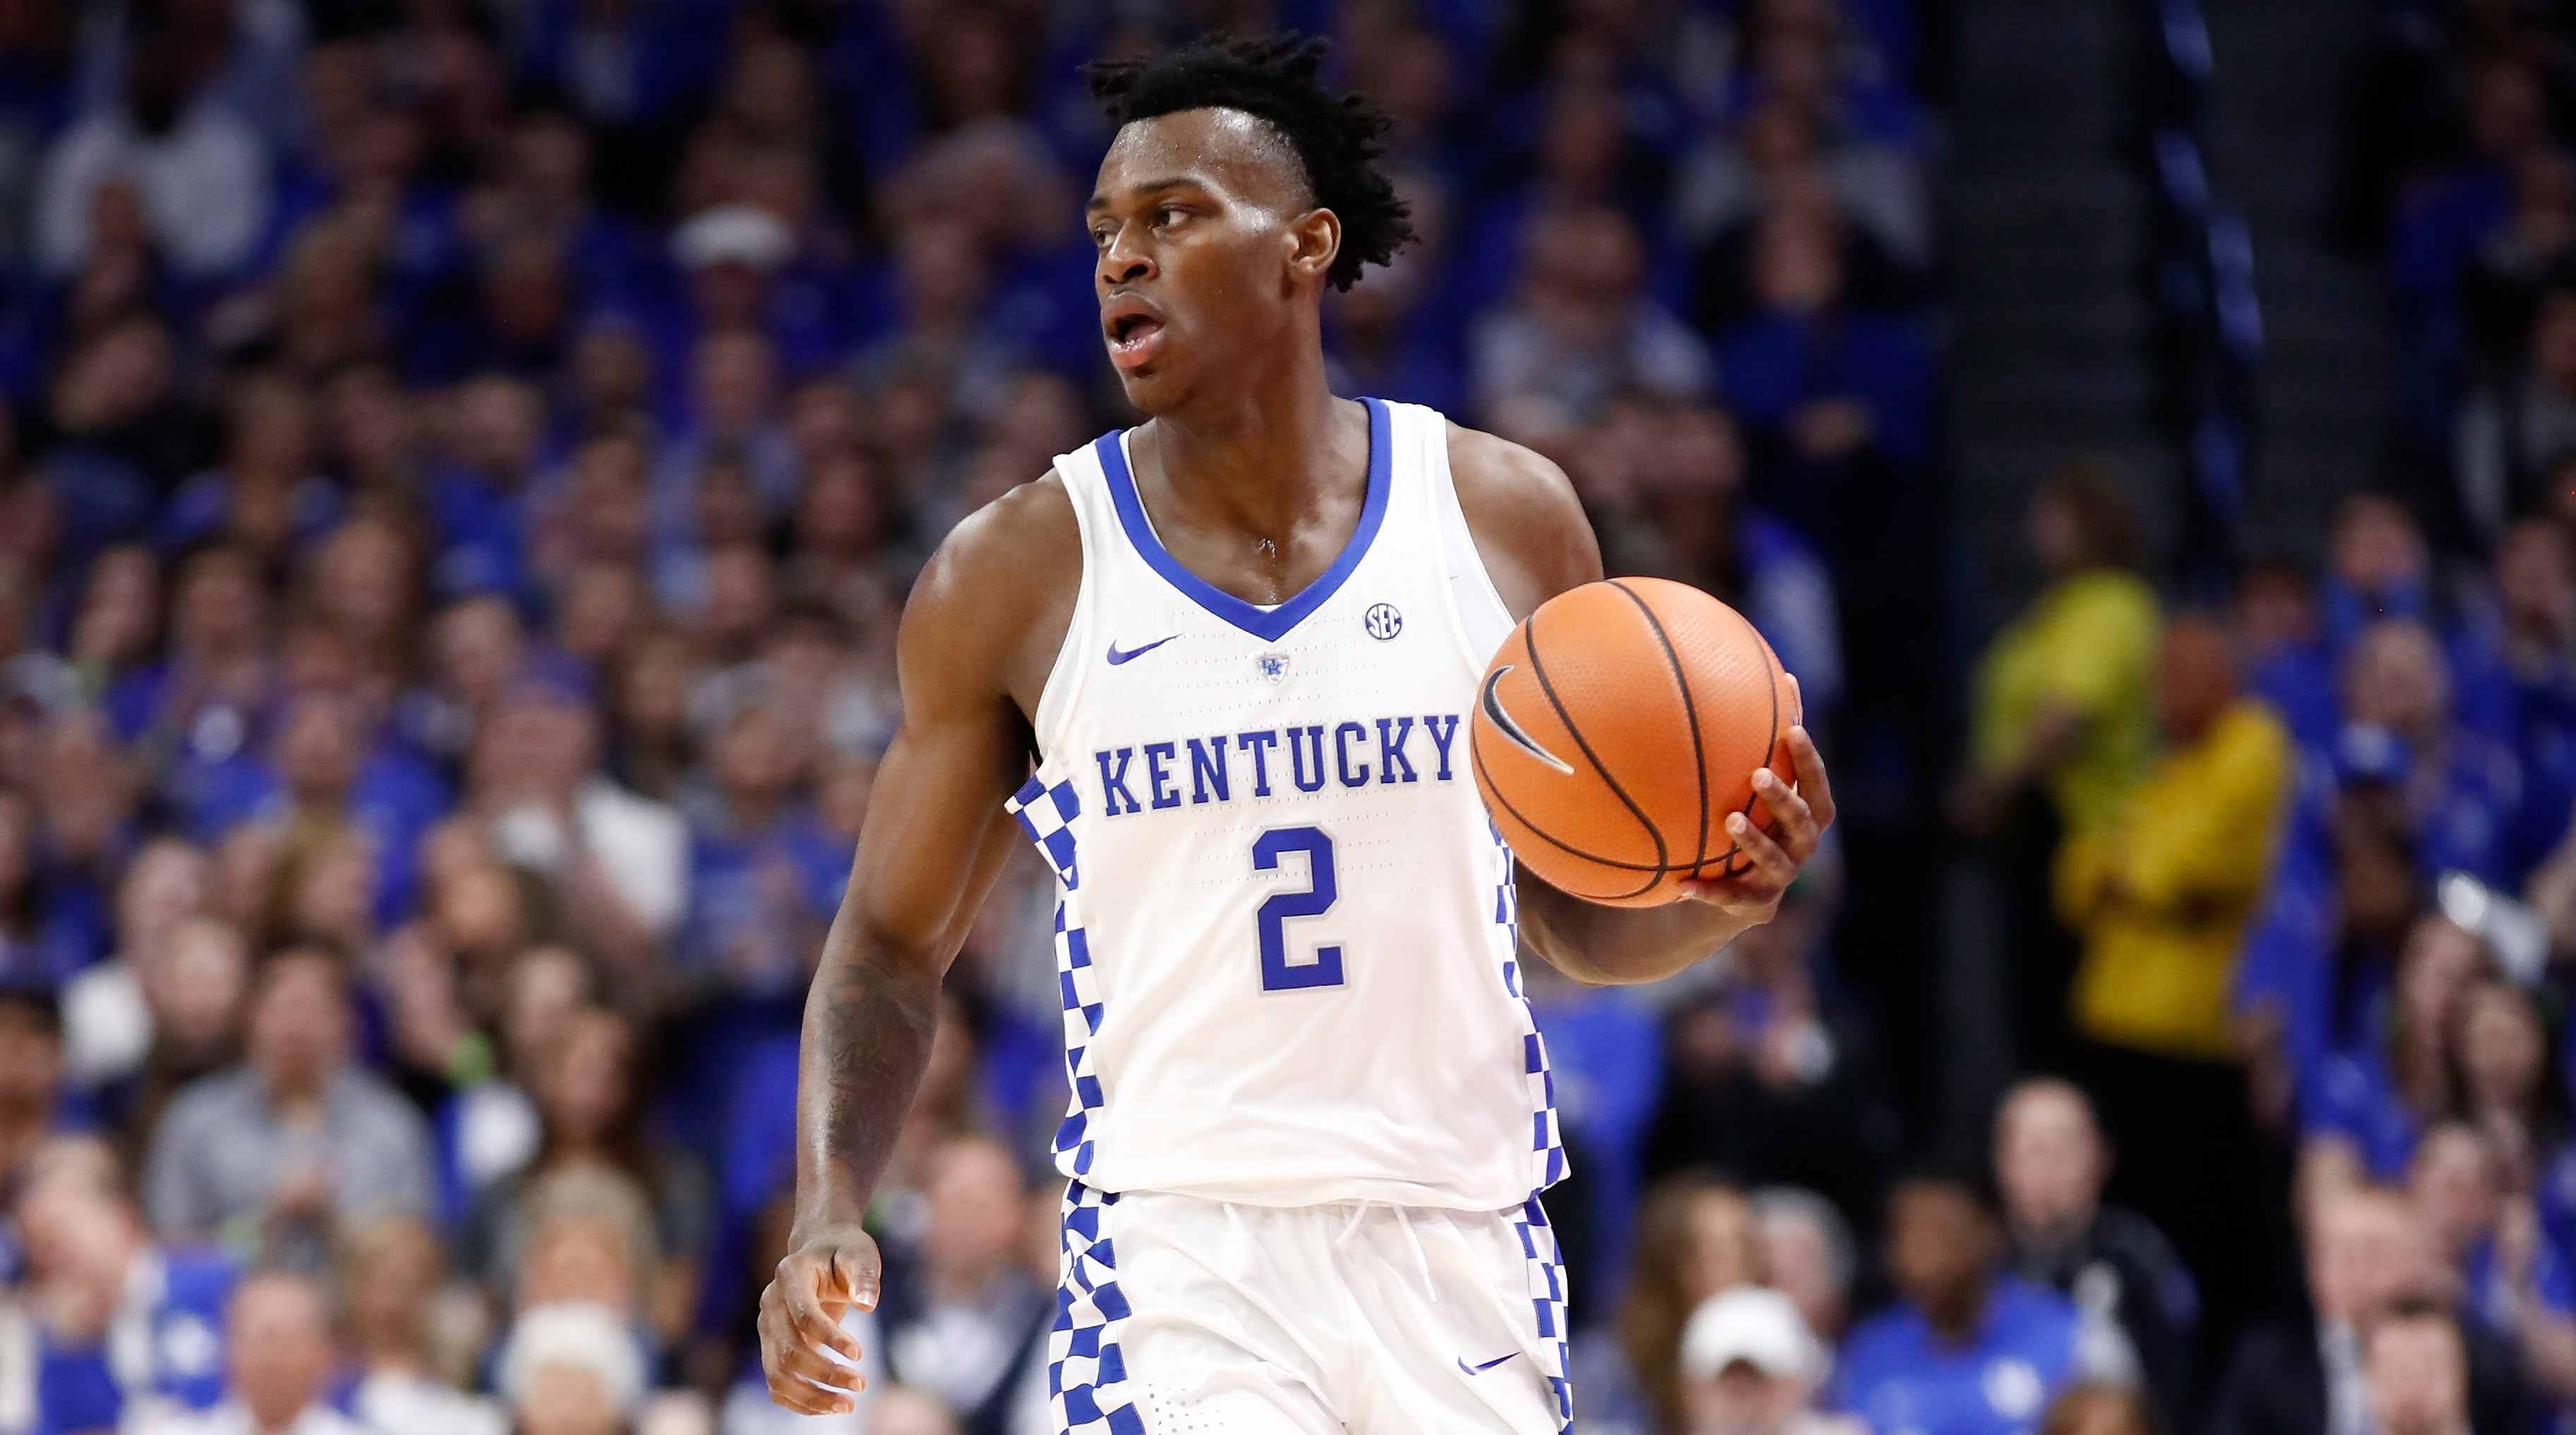 Jarred-vanderbilt-nba-draft